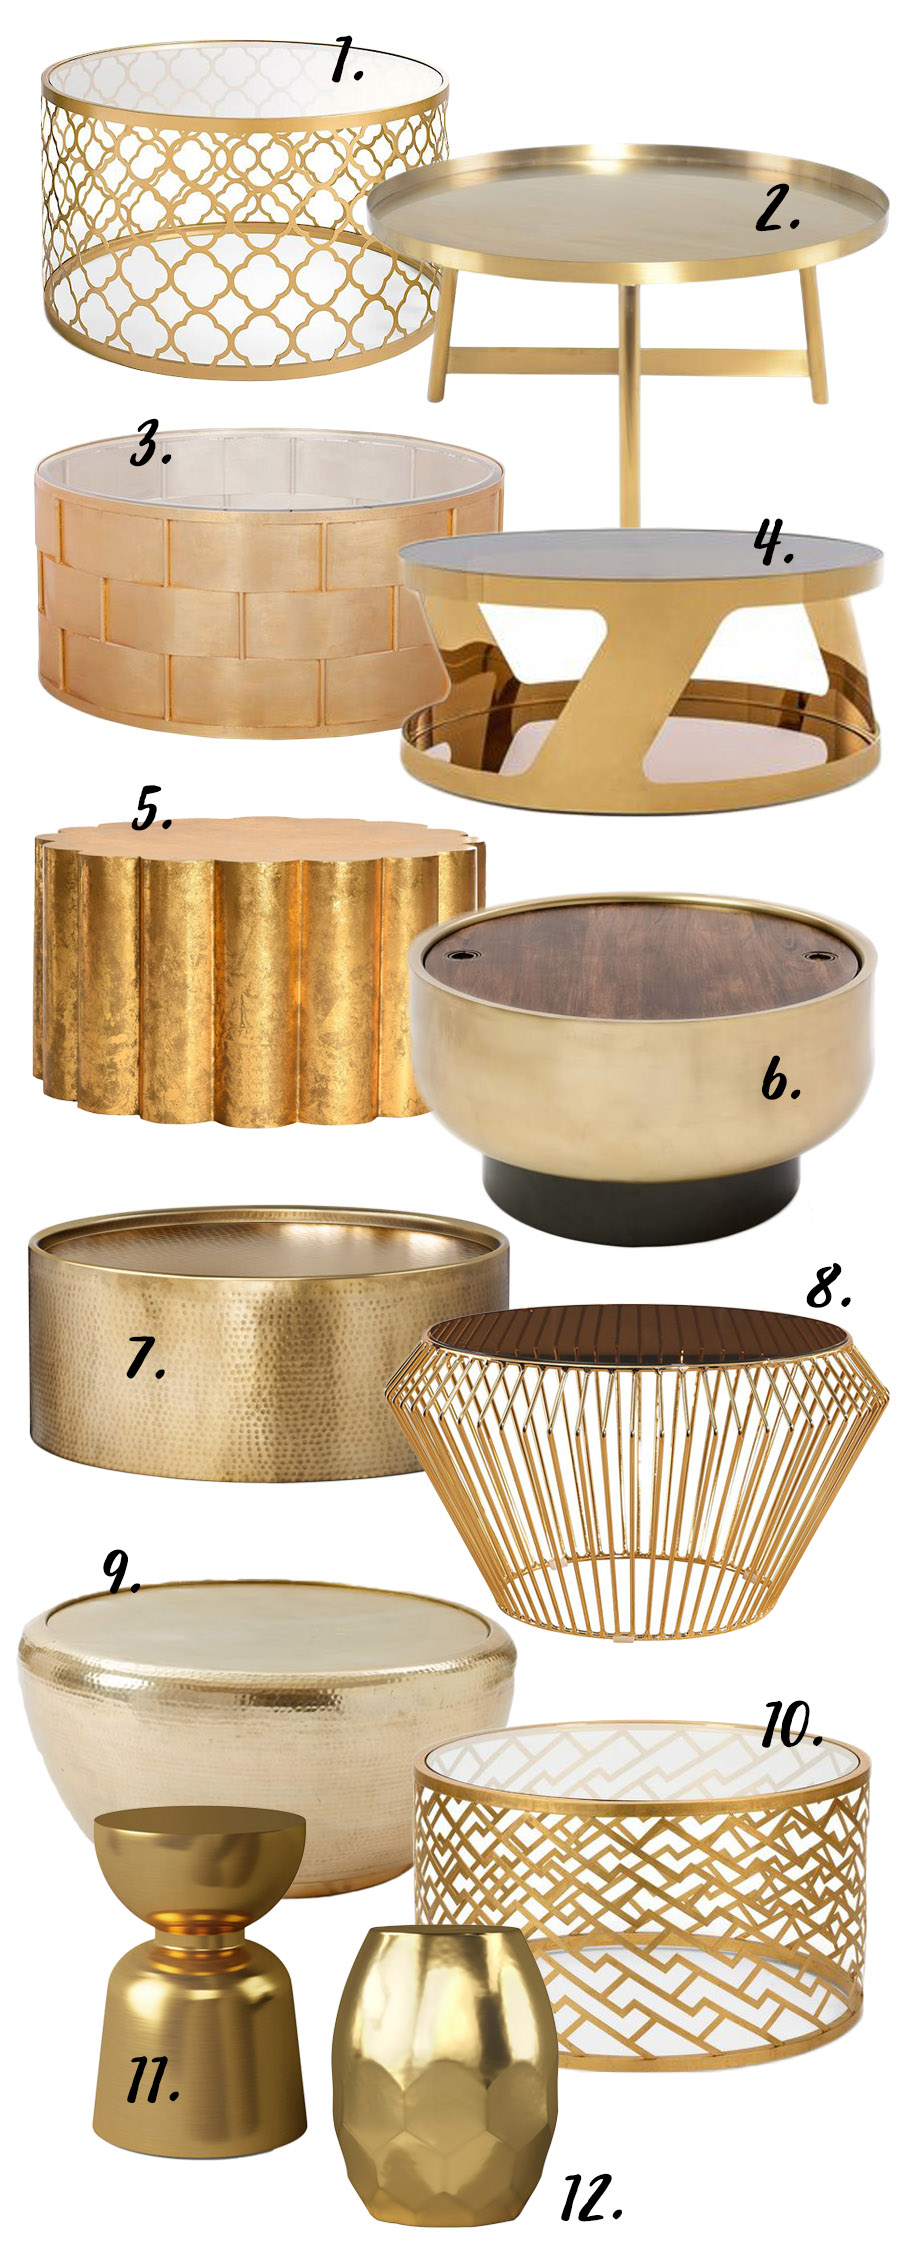 THE GOLD ROUND COFFEE TABLE - 12 STYLISH OPTIONS STARTING AT $63.99 - Hey, Djangles. heydjangles.com - round gold coffee table, coffee table gold, gold coffee table living room, gold and glass coffee table, gold glass coffee table, copper coffee table, round coffee table ideas, round coffee tables, coffee tables round, round coffee table decor ideas.